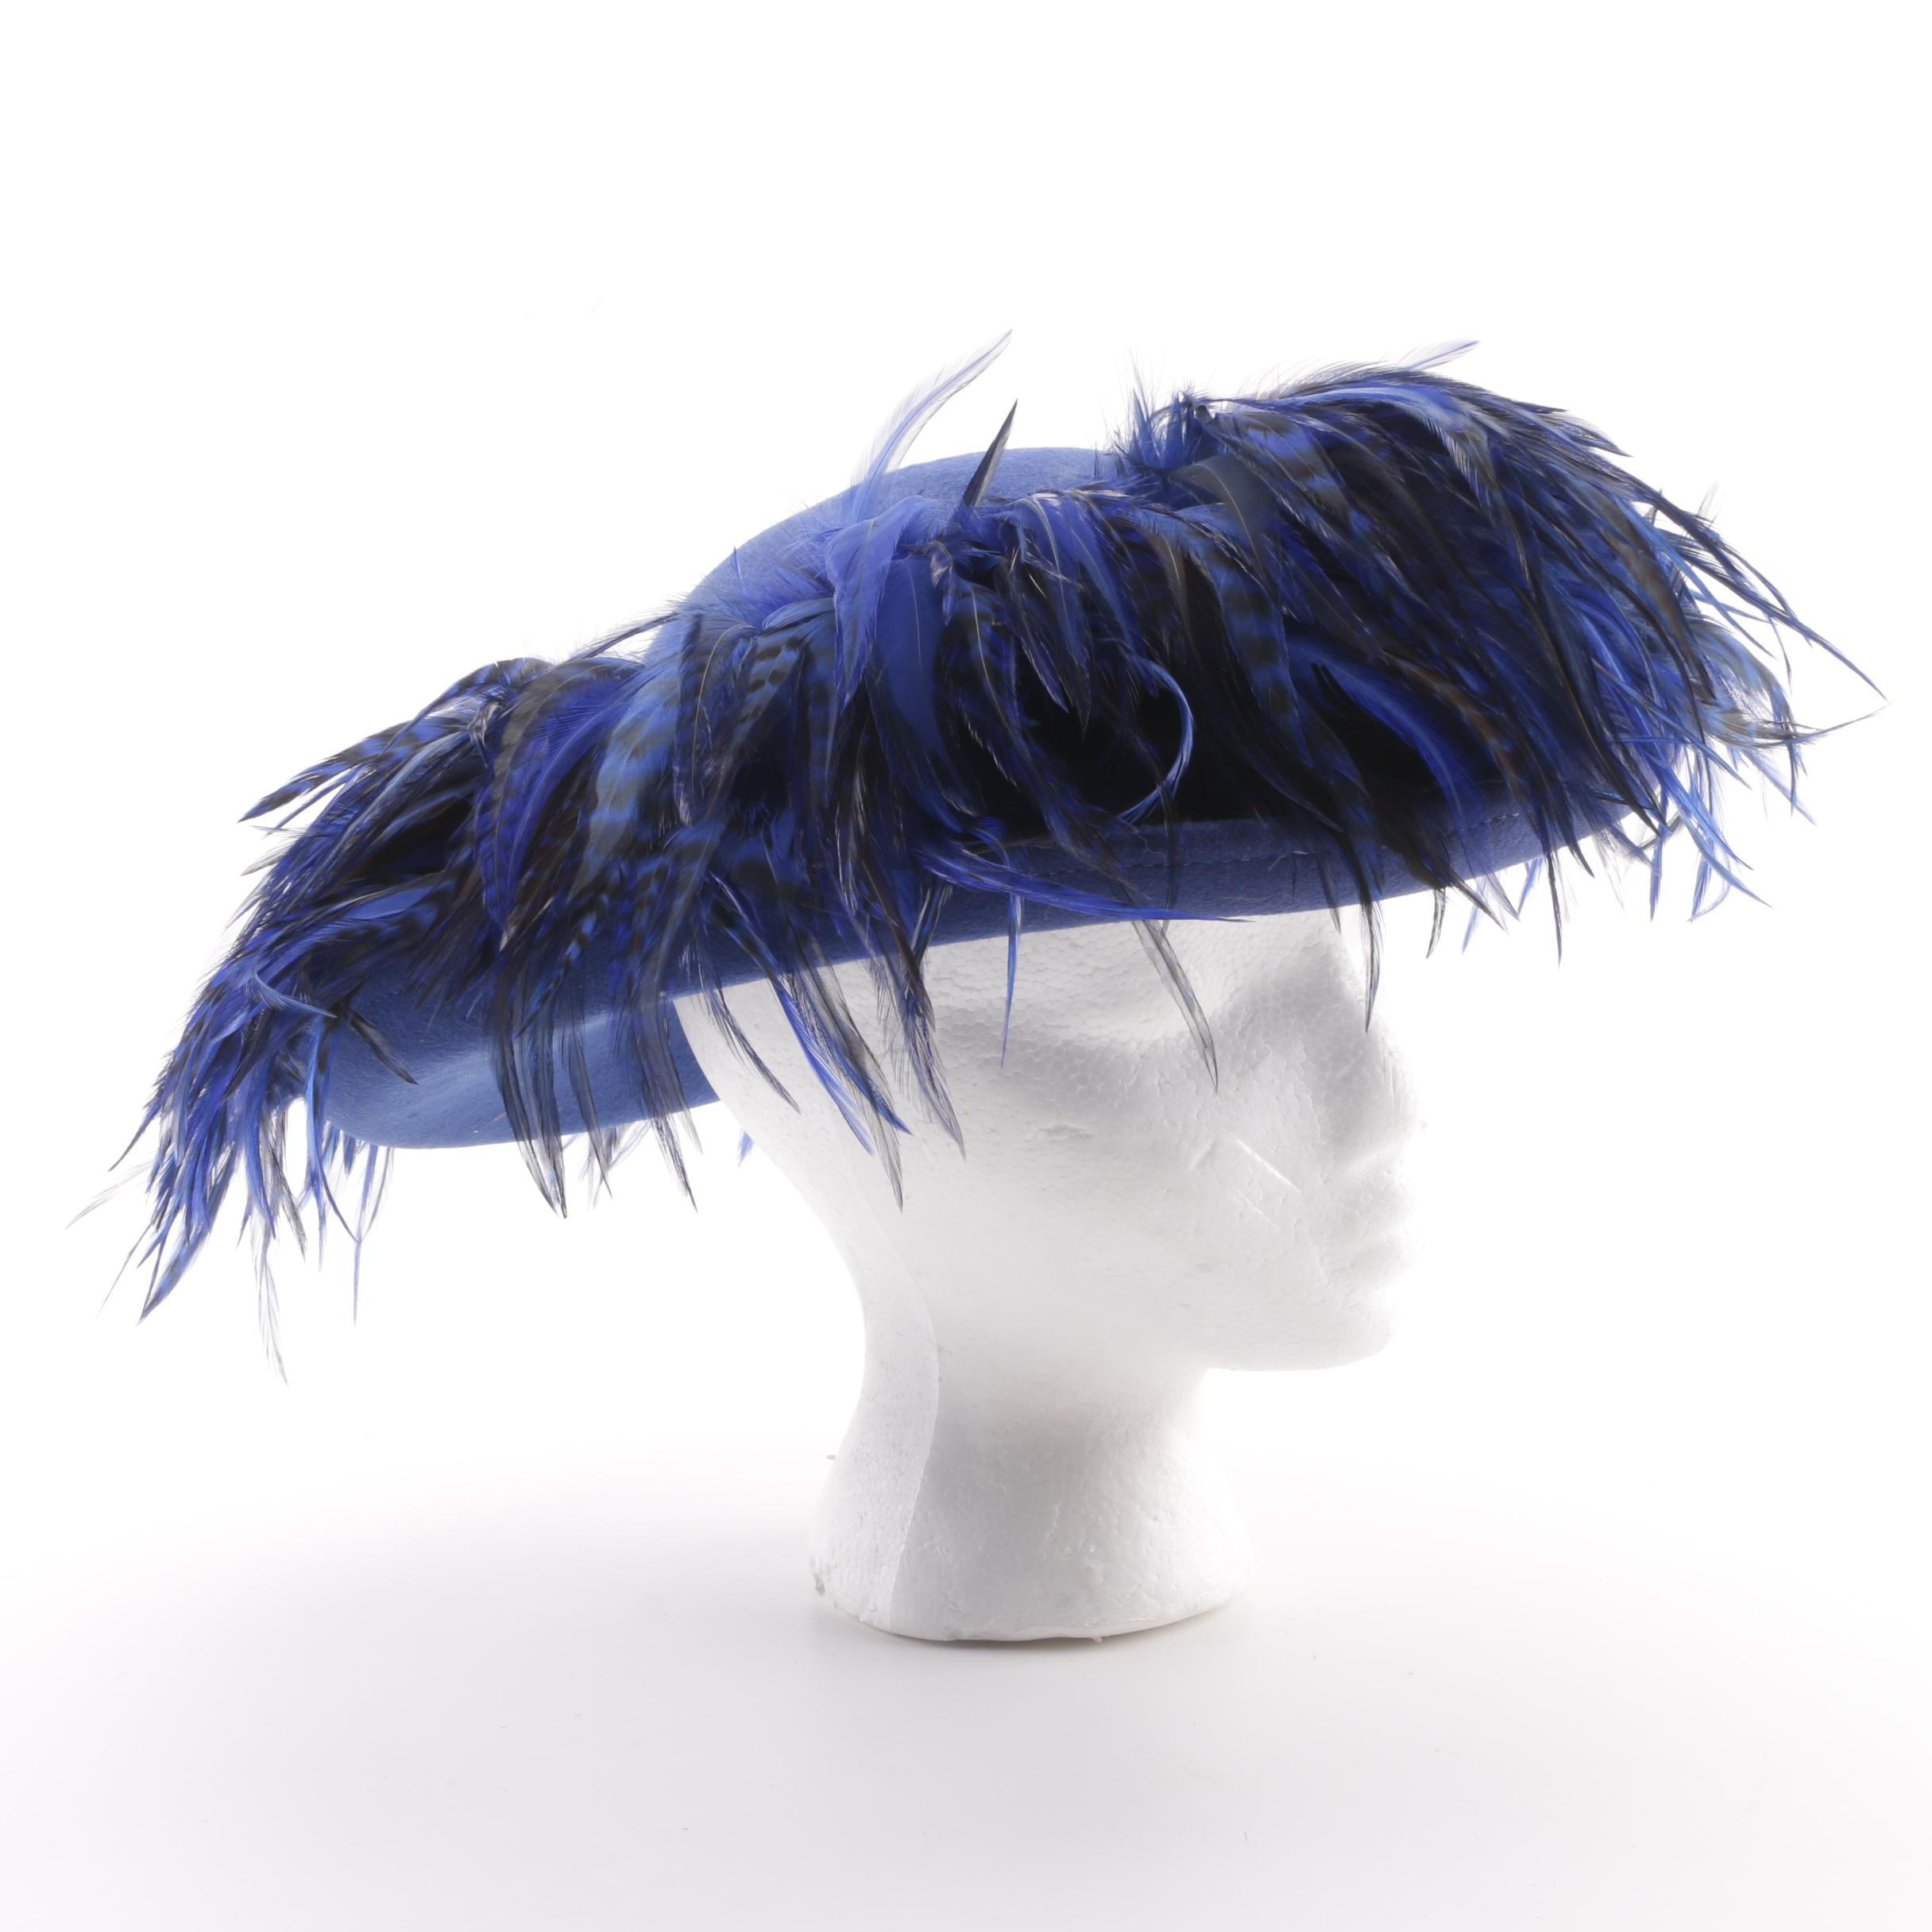 Vintage George W. Bollman & Co. Blue Felted Wool Hat with Feathers